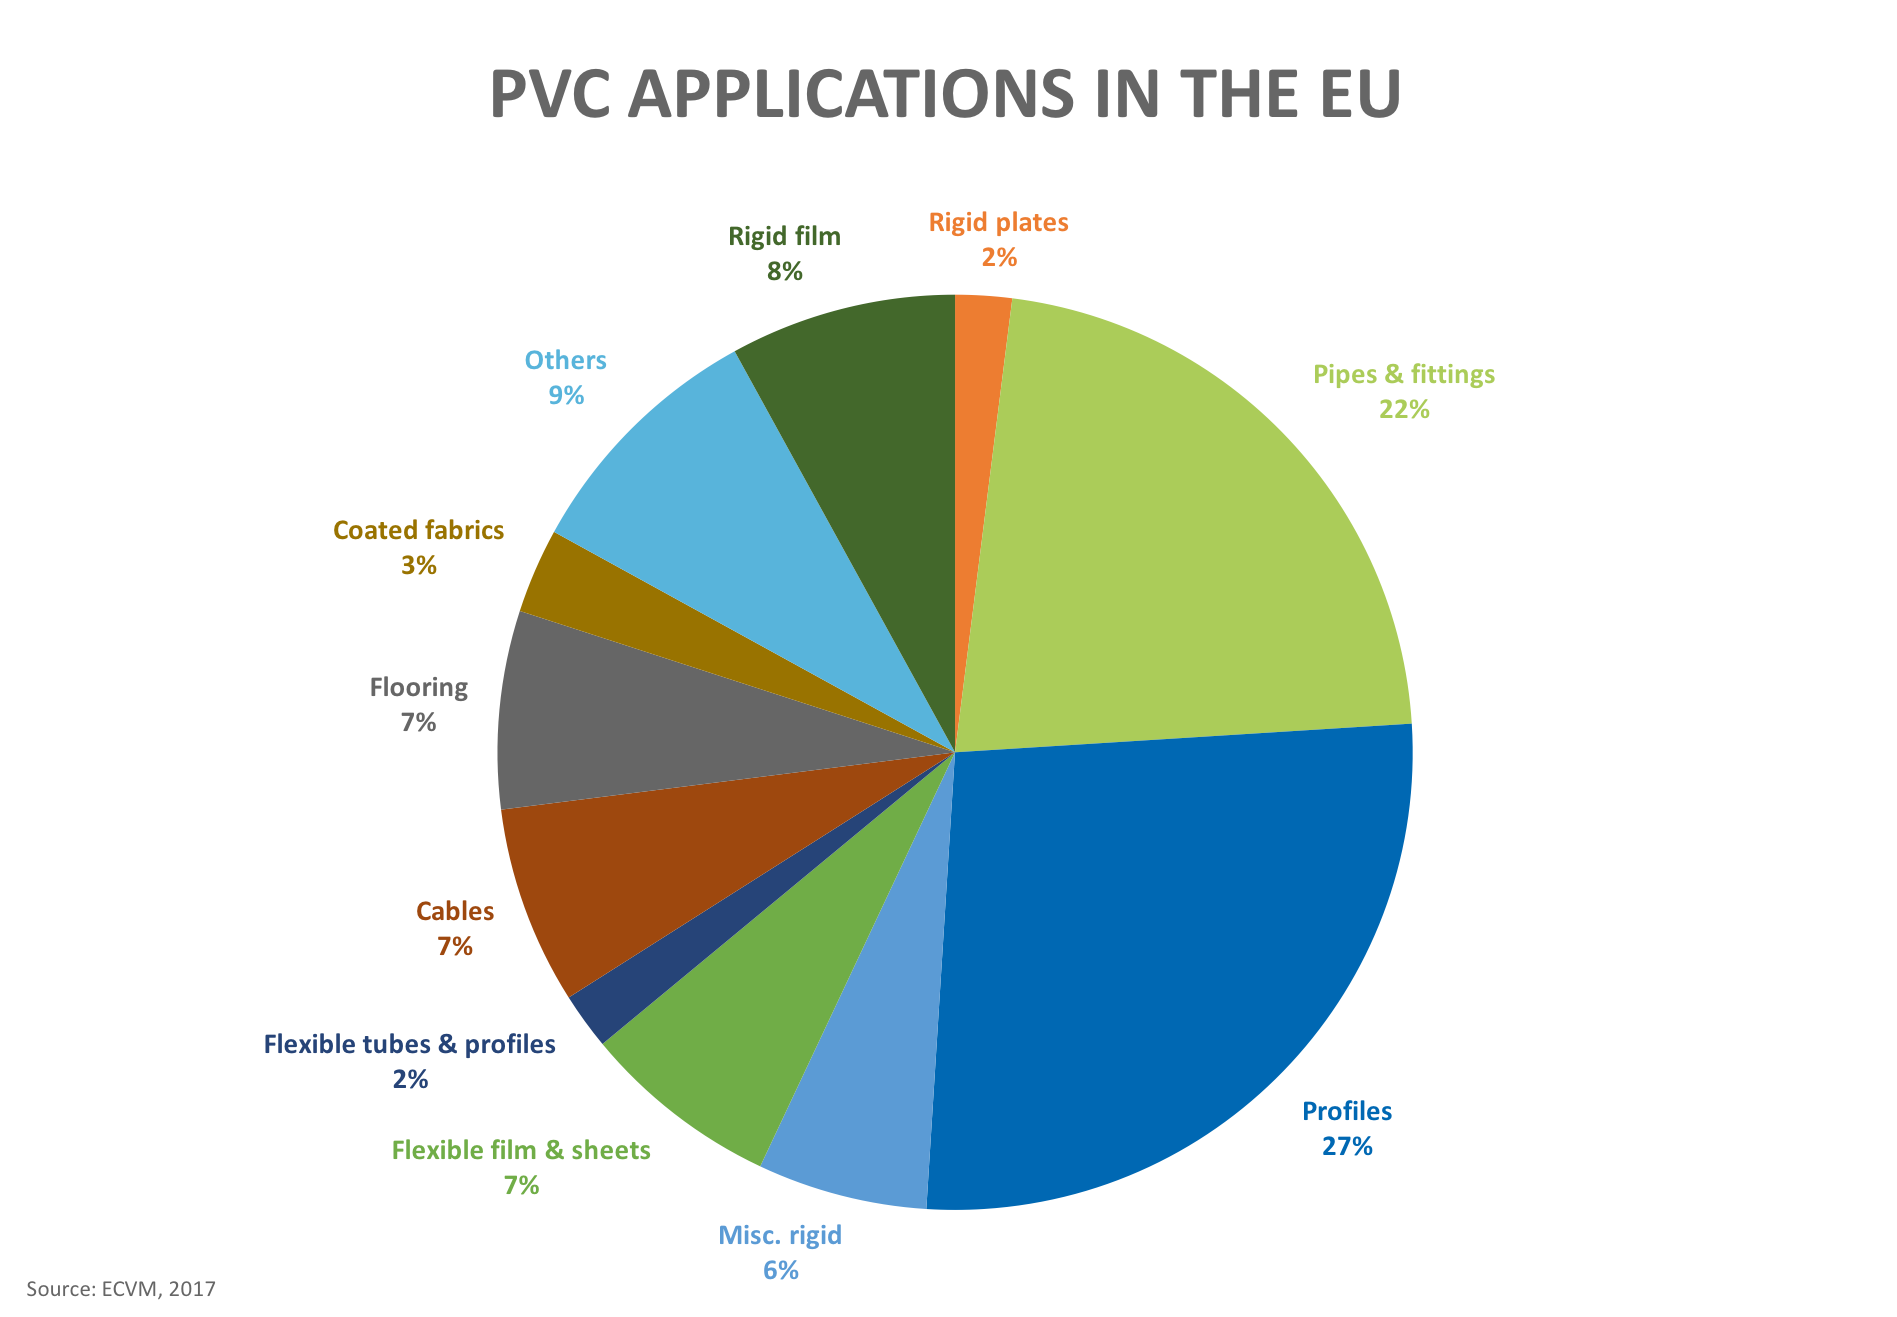 PVC applications in the EU